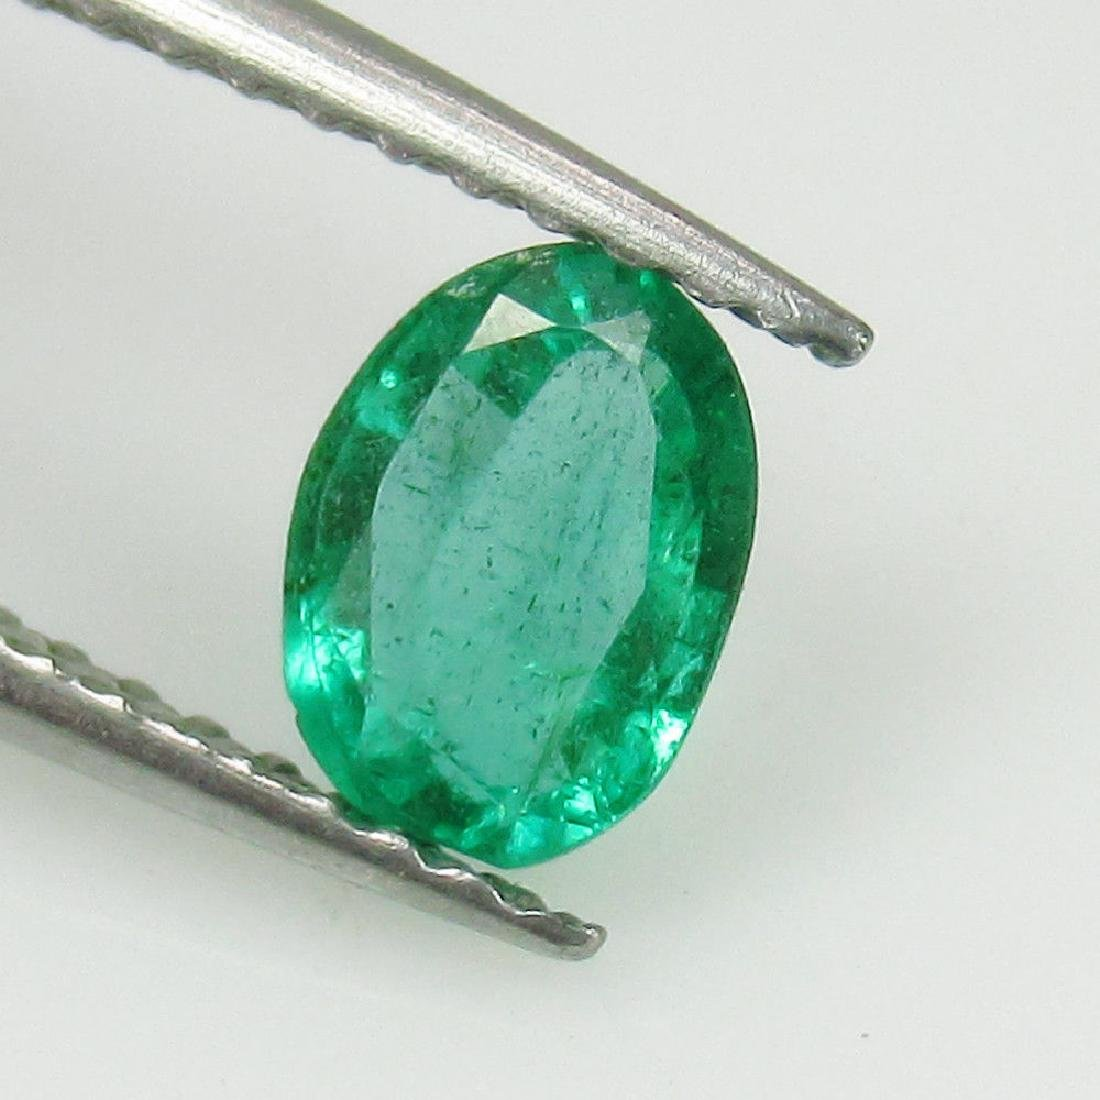 0.55 Ct Genuine Loose Zambian Emerald Oval cut Top